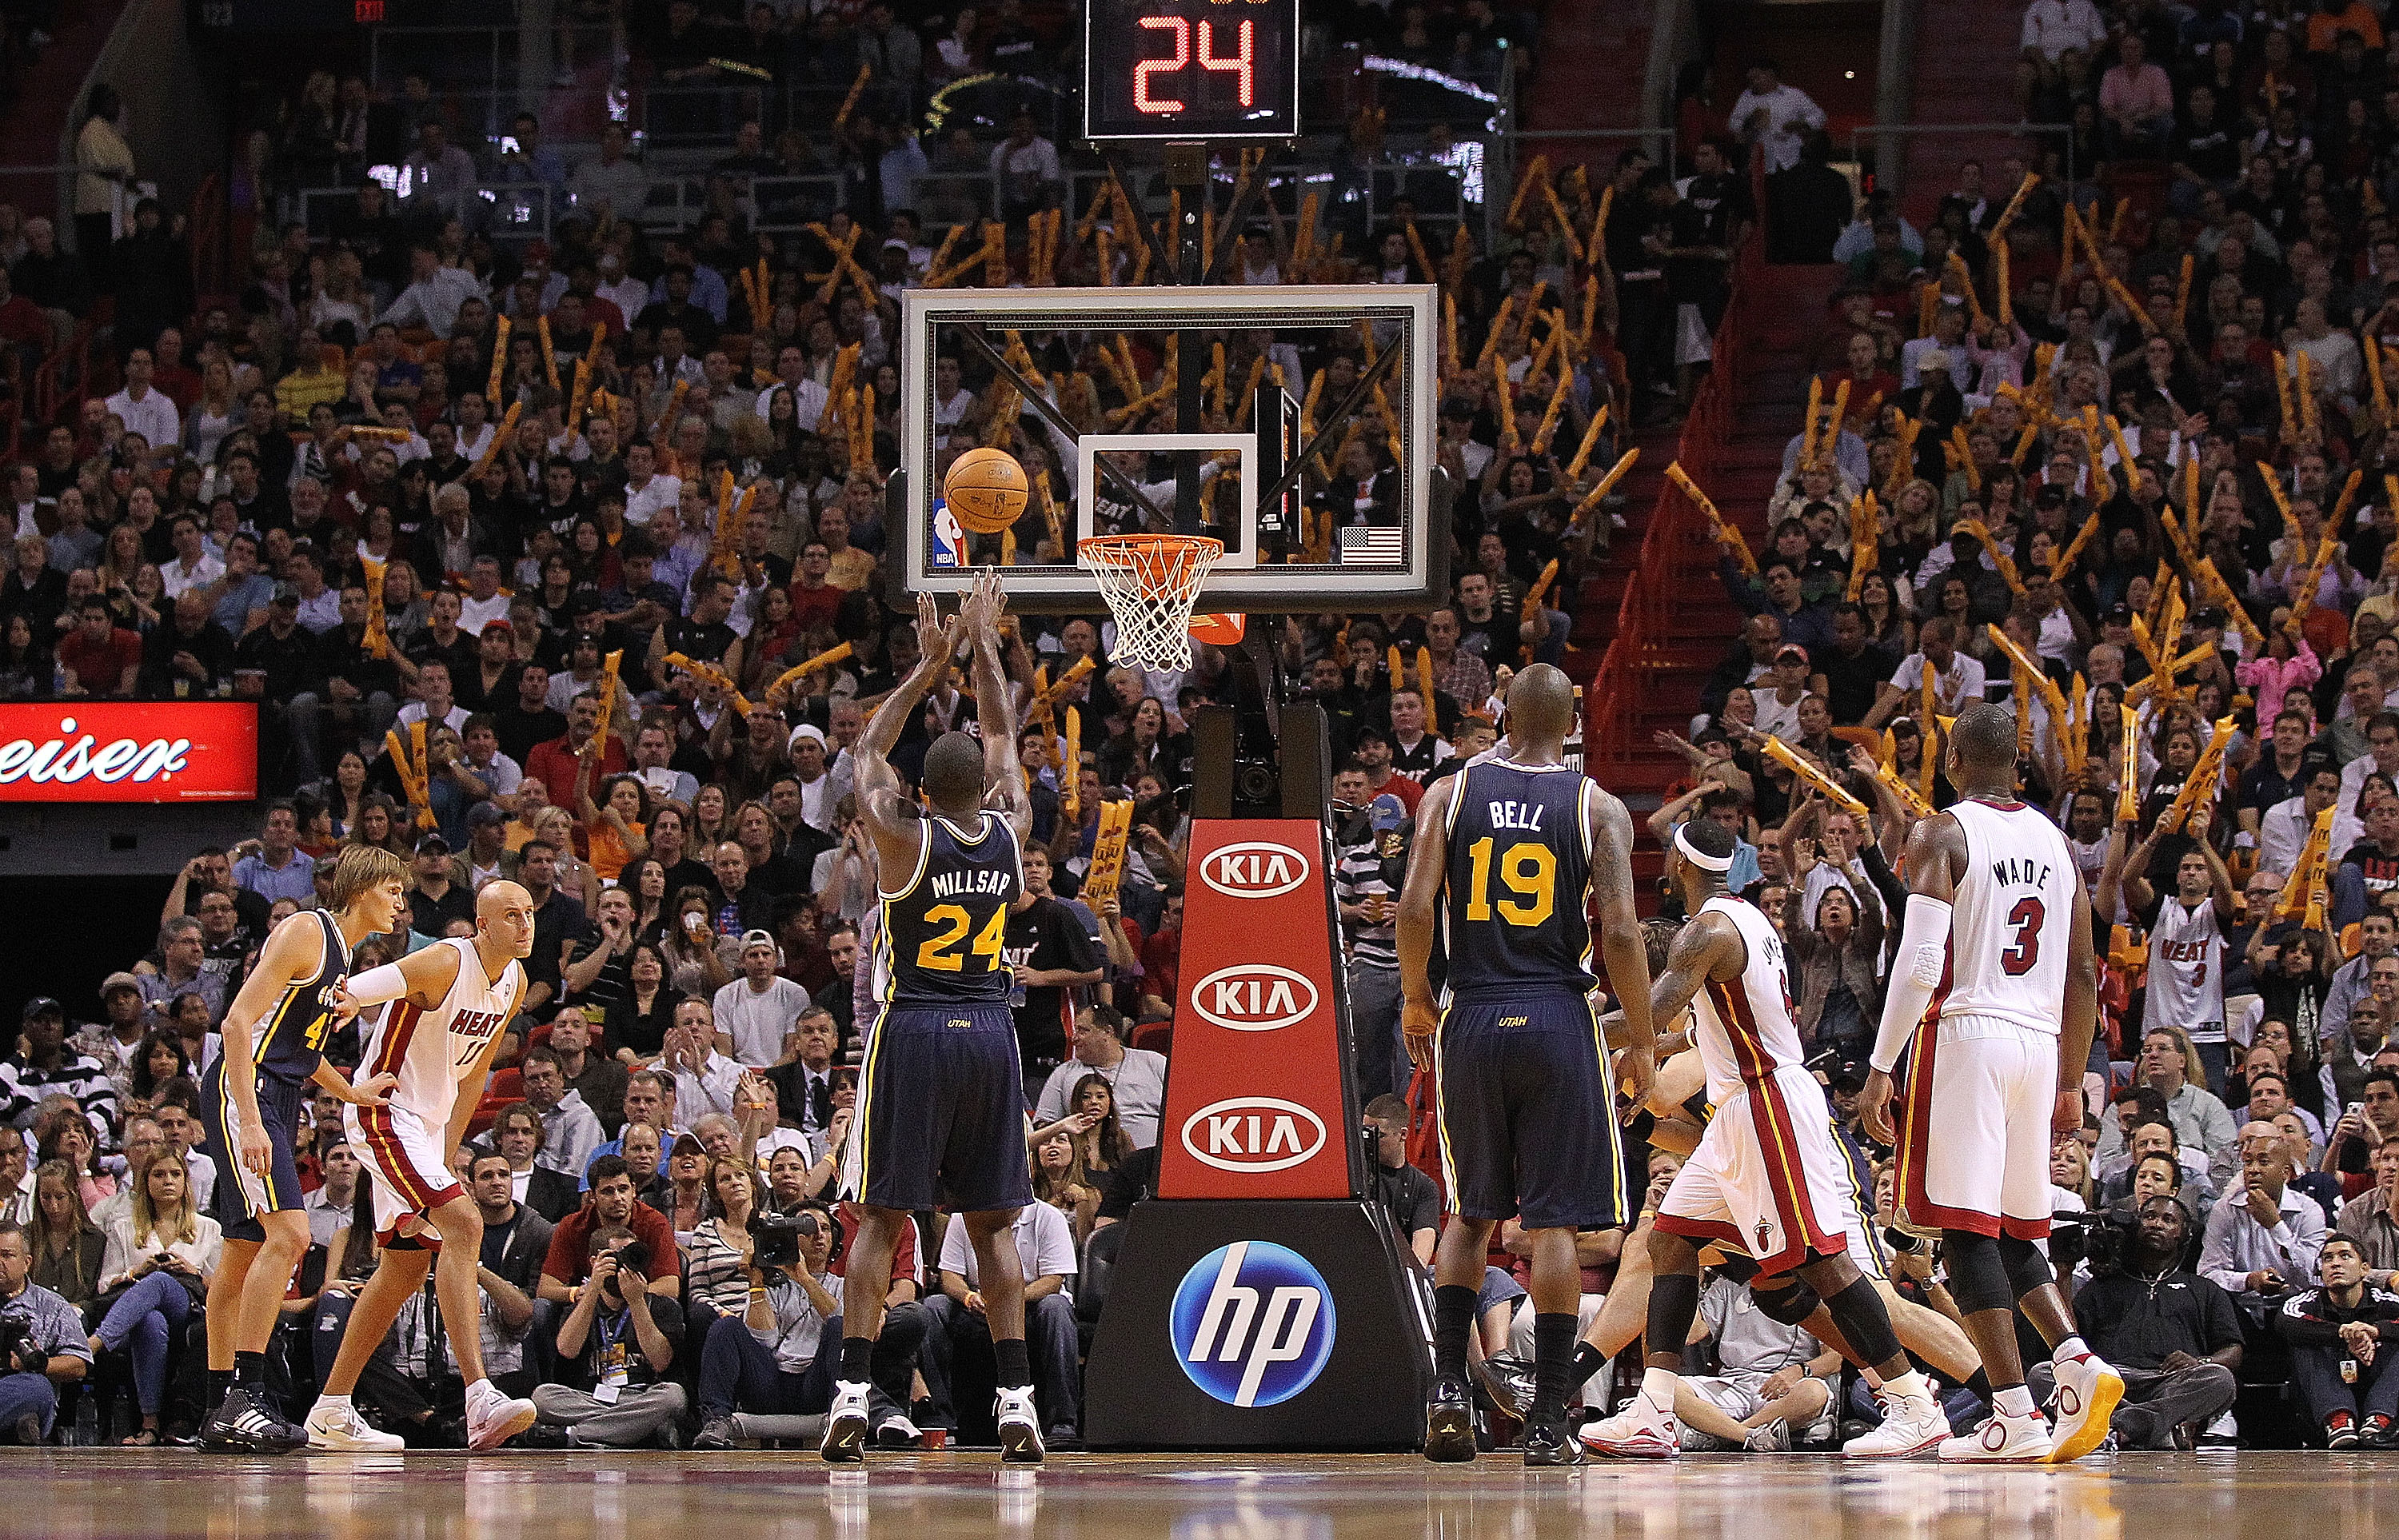 MIAMI - NOVEMBER 09:  Paul Millsap #24 of the Utah Jazz shoots a foul shot during a game against the Miami Heat at American Airlines Arena on November 9, 2010 in Miami, Florida. NOTE TO USER: User expressly acknowledges and agrees that, by downloading and